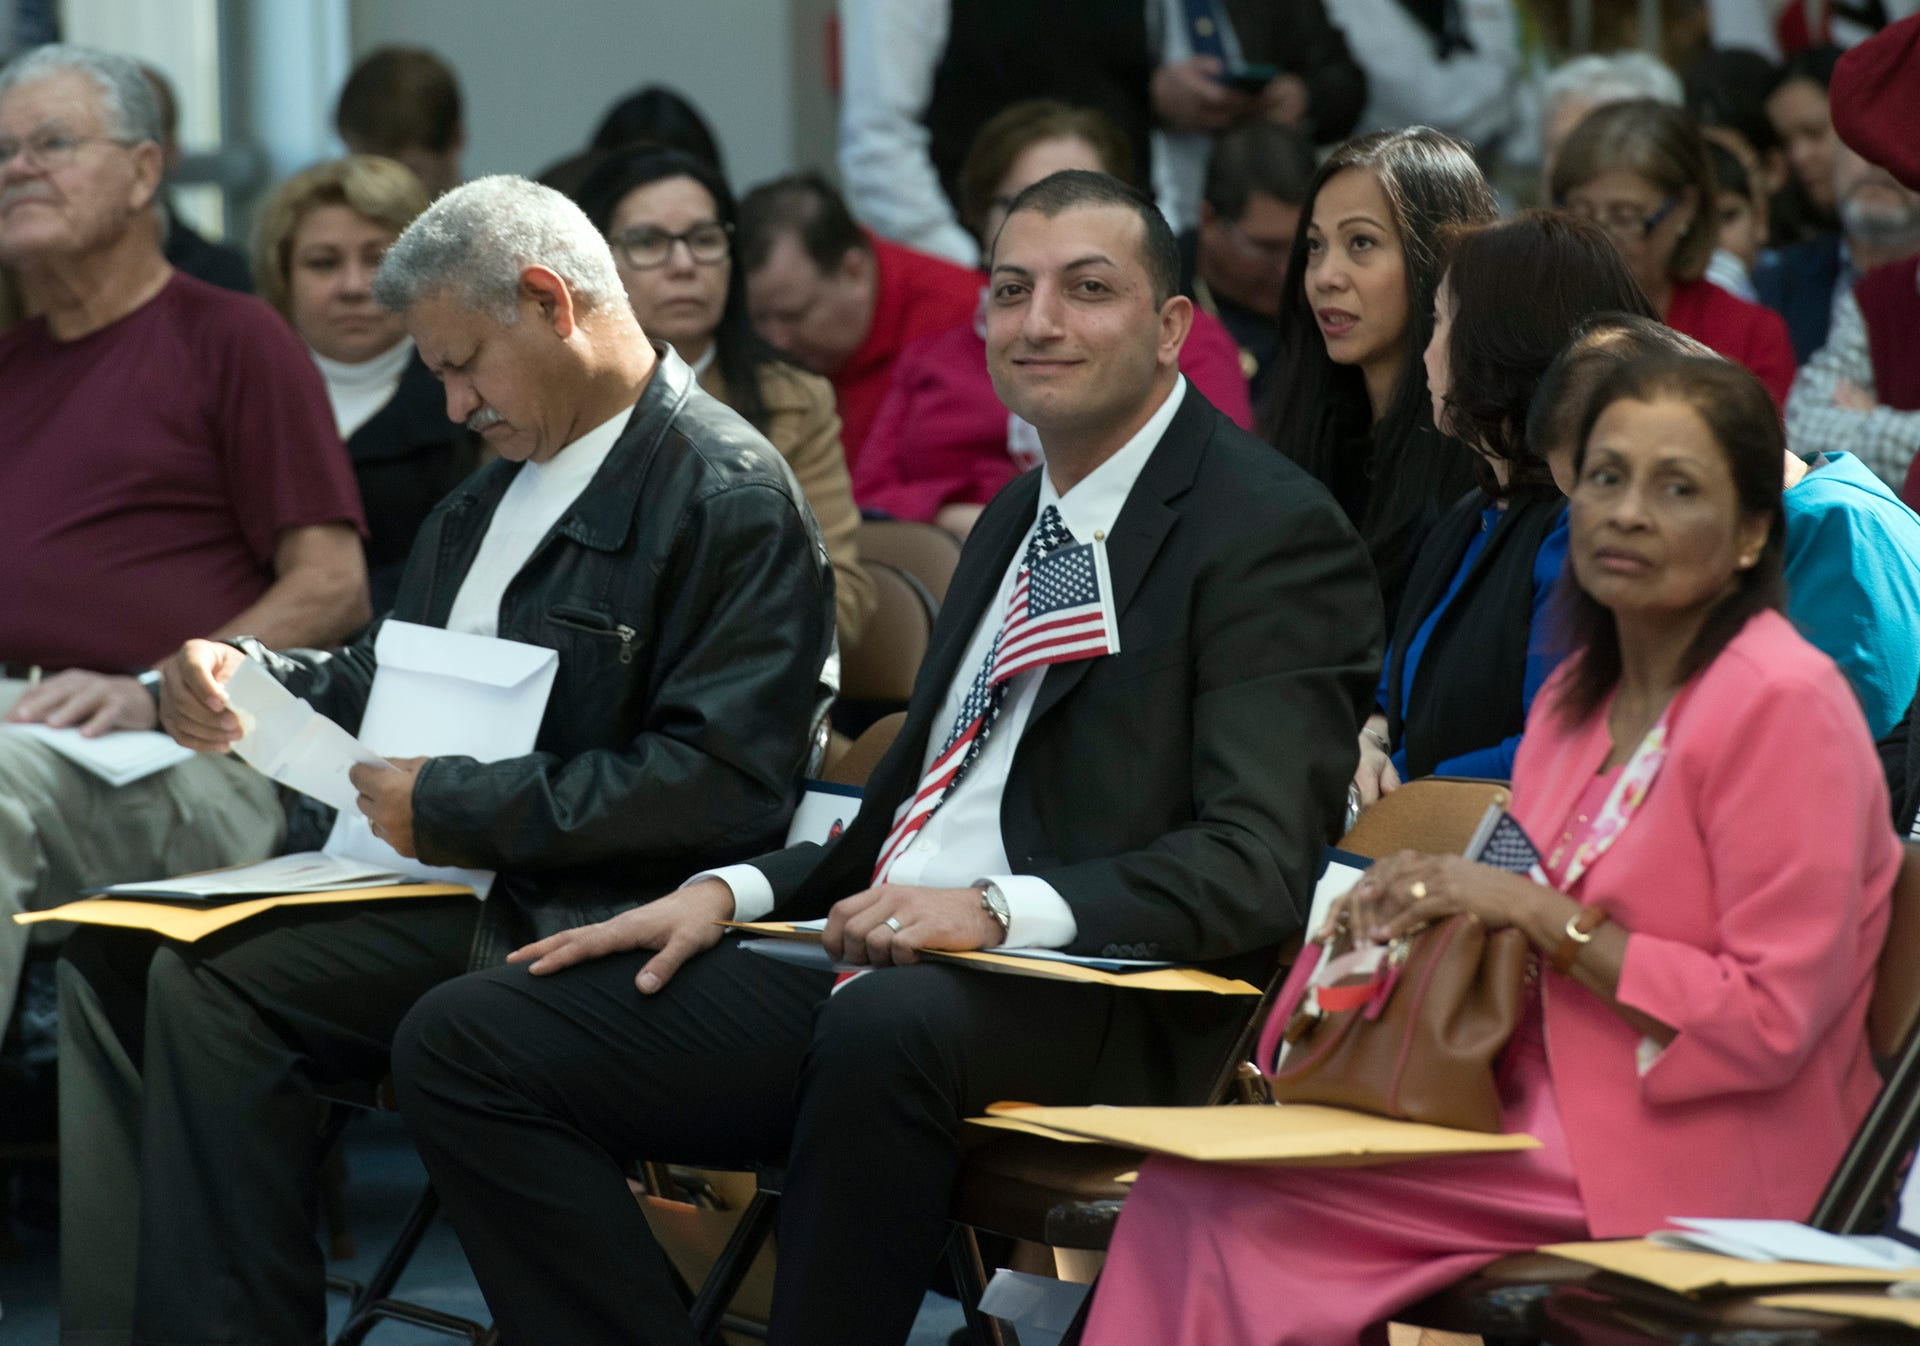 New citizens welcomed at Pensacola naturalization ceremony